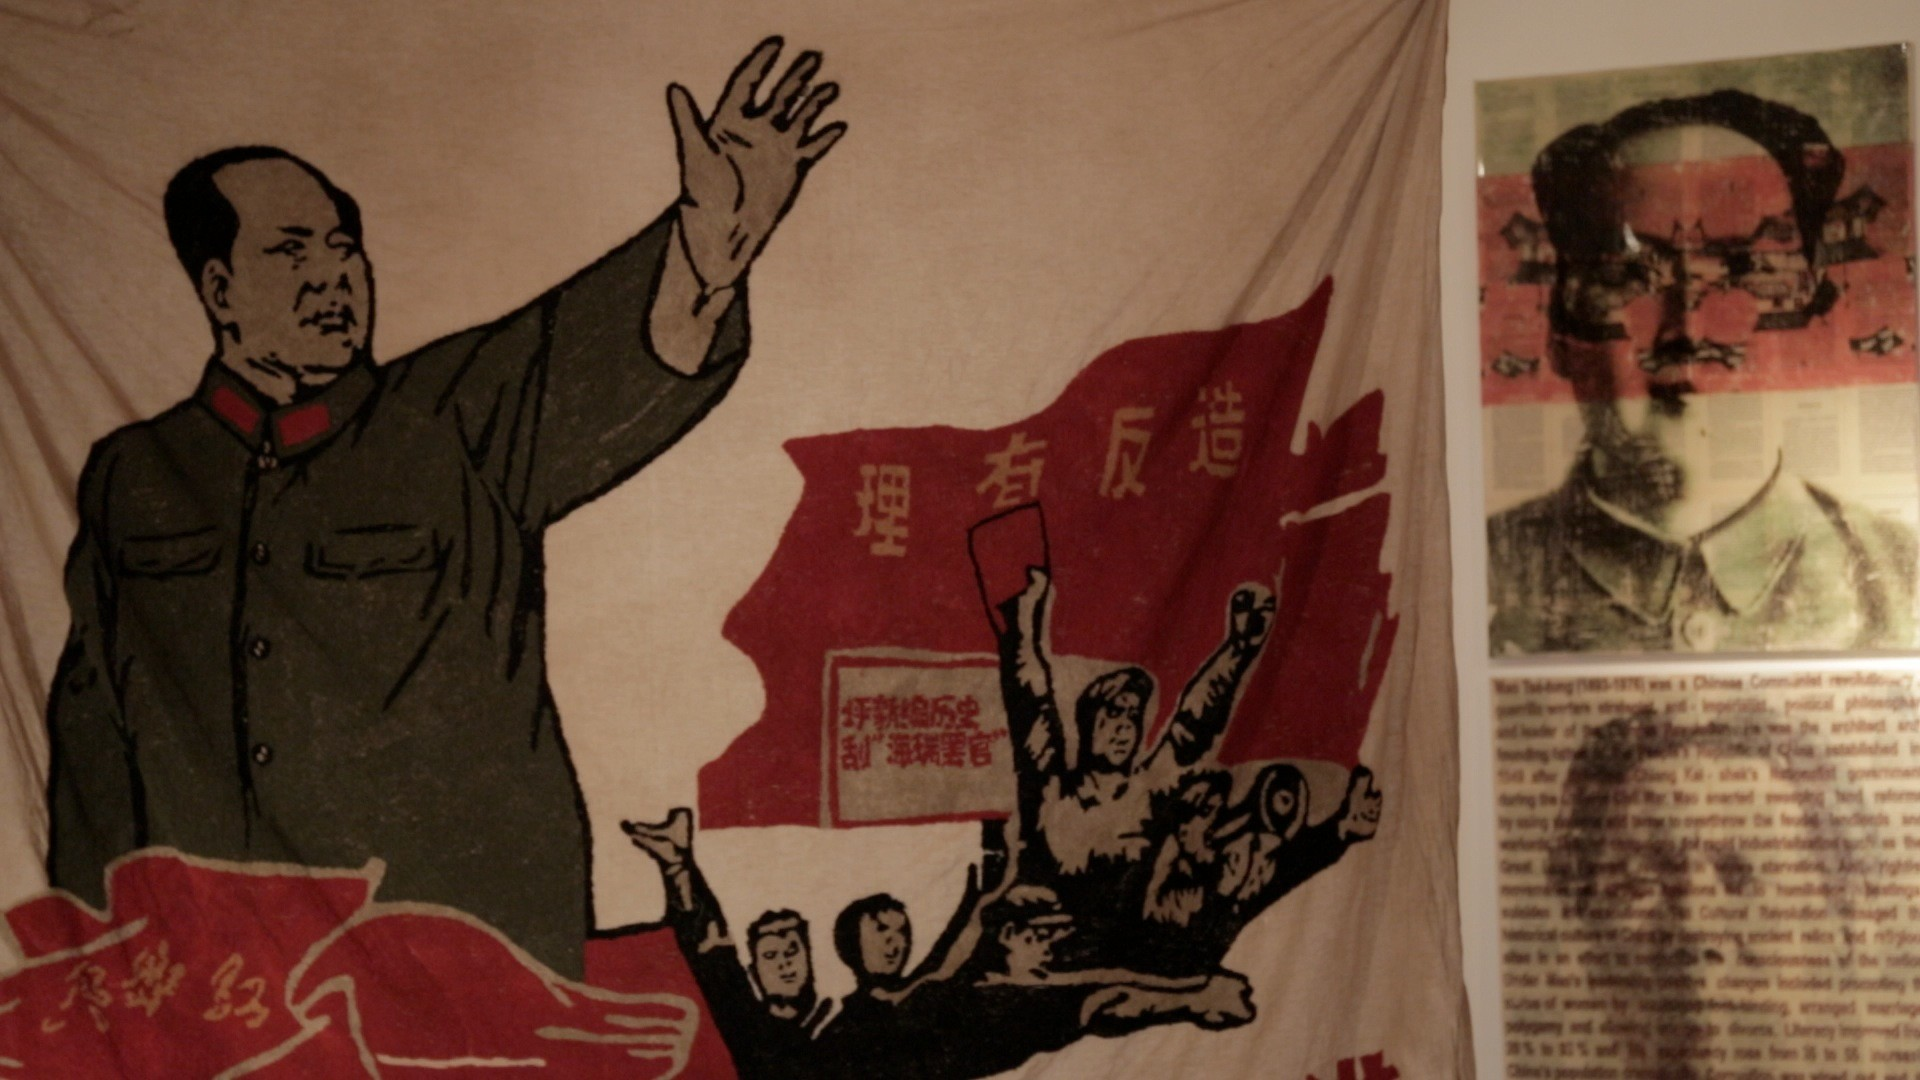 Res: 1920x1080, Foster Eastman take on Mao Zedong